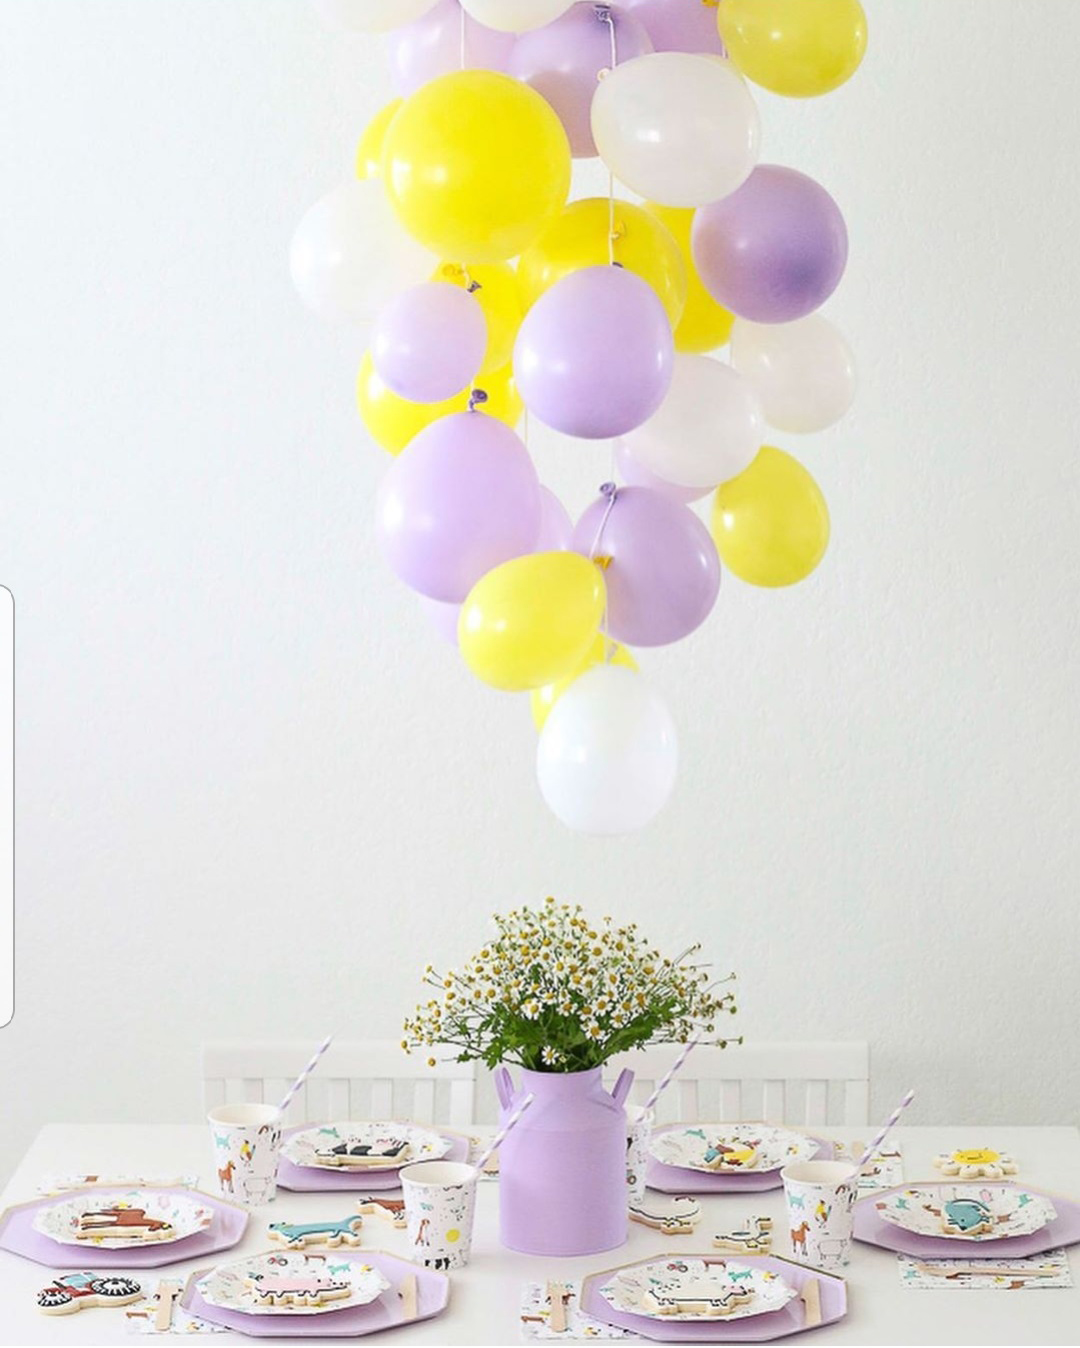 Decorate a room with balloons, no helium needed